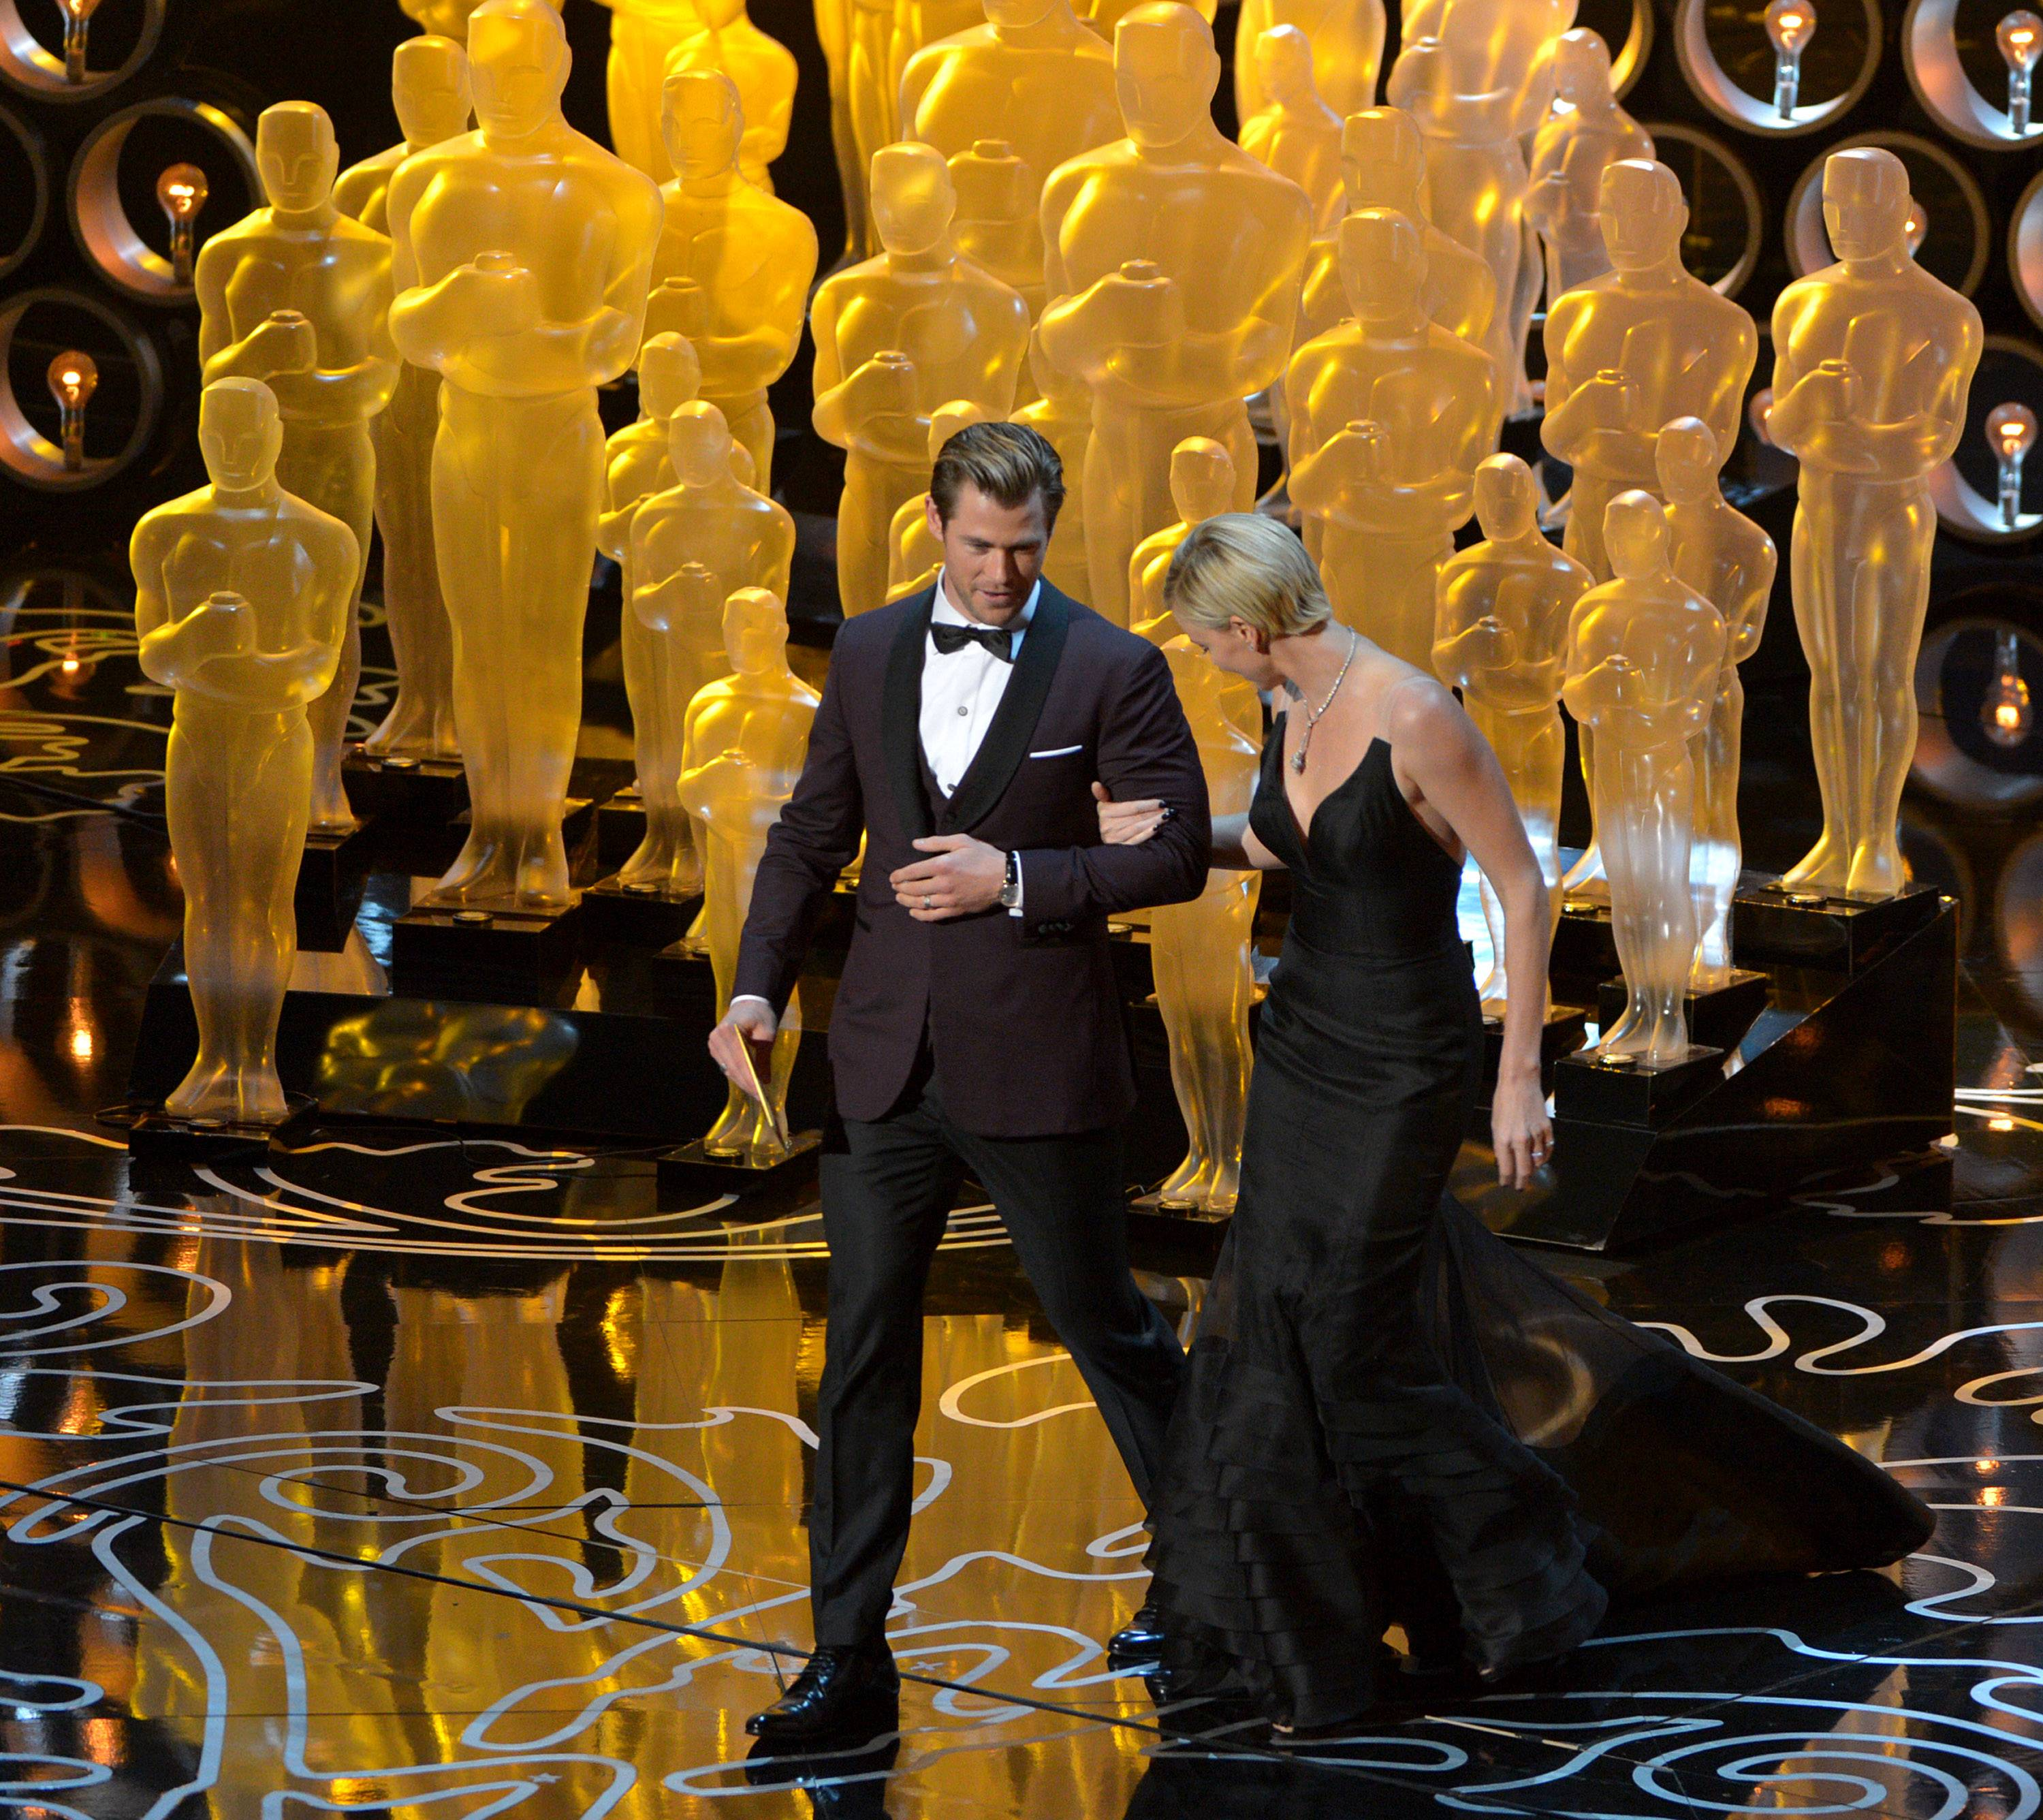 Chris Hemsworth, left, and Charlize Theron walk on stage during the Oscars.